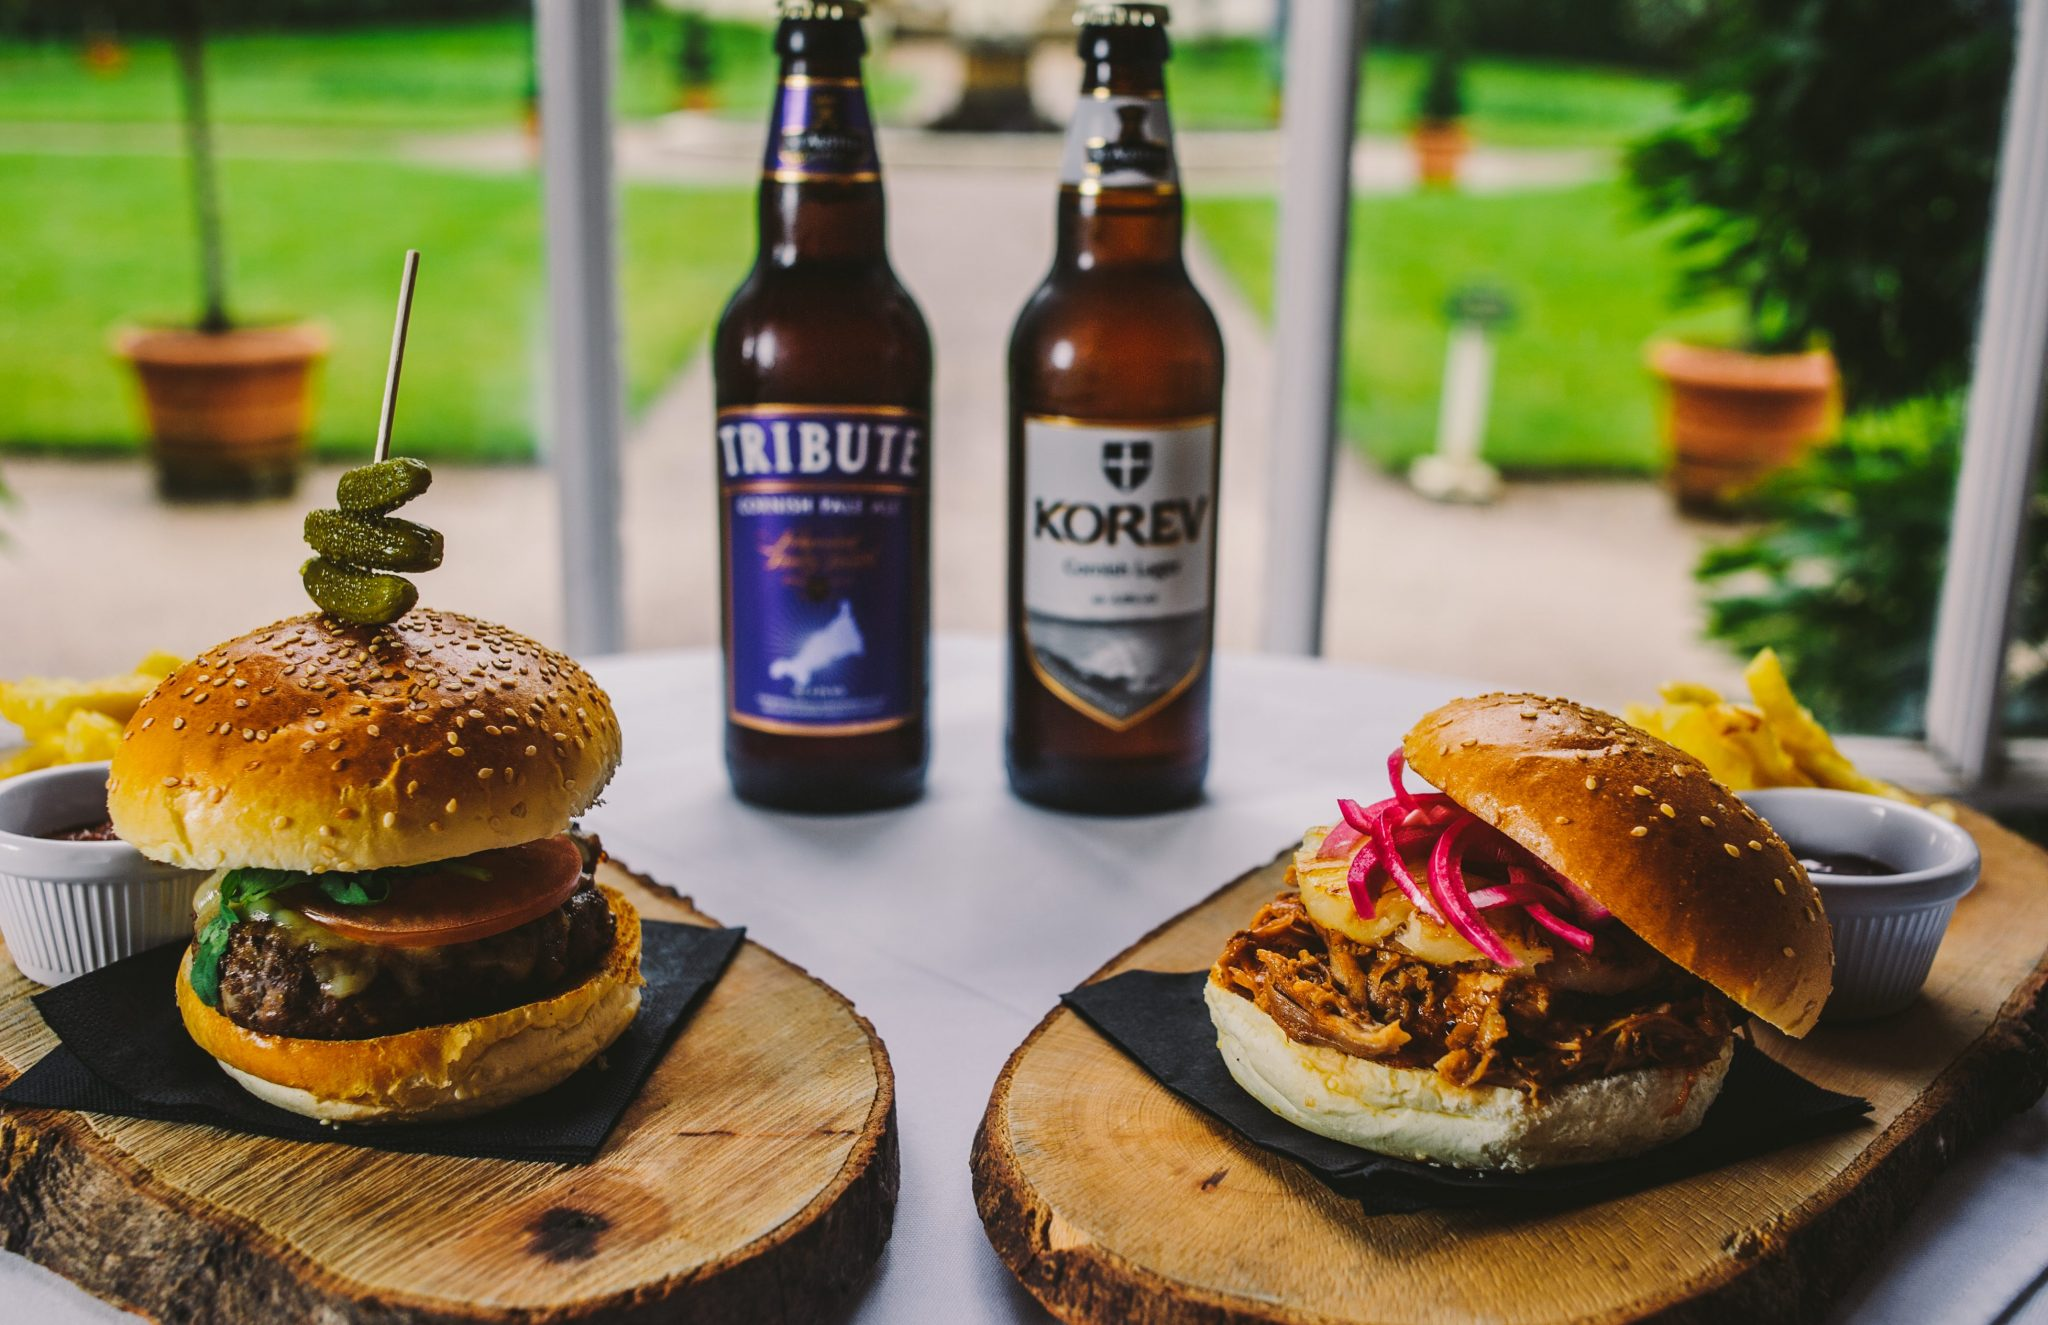 Pulled Pork Burger and Beef Burger with Ale